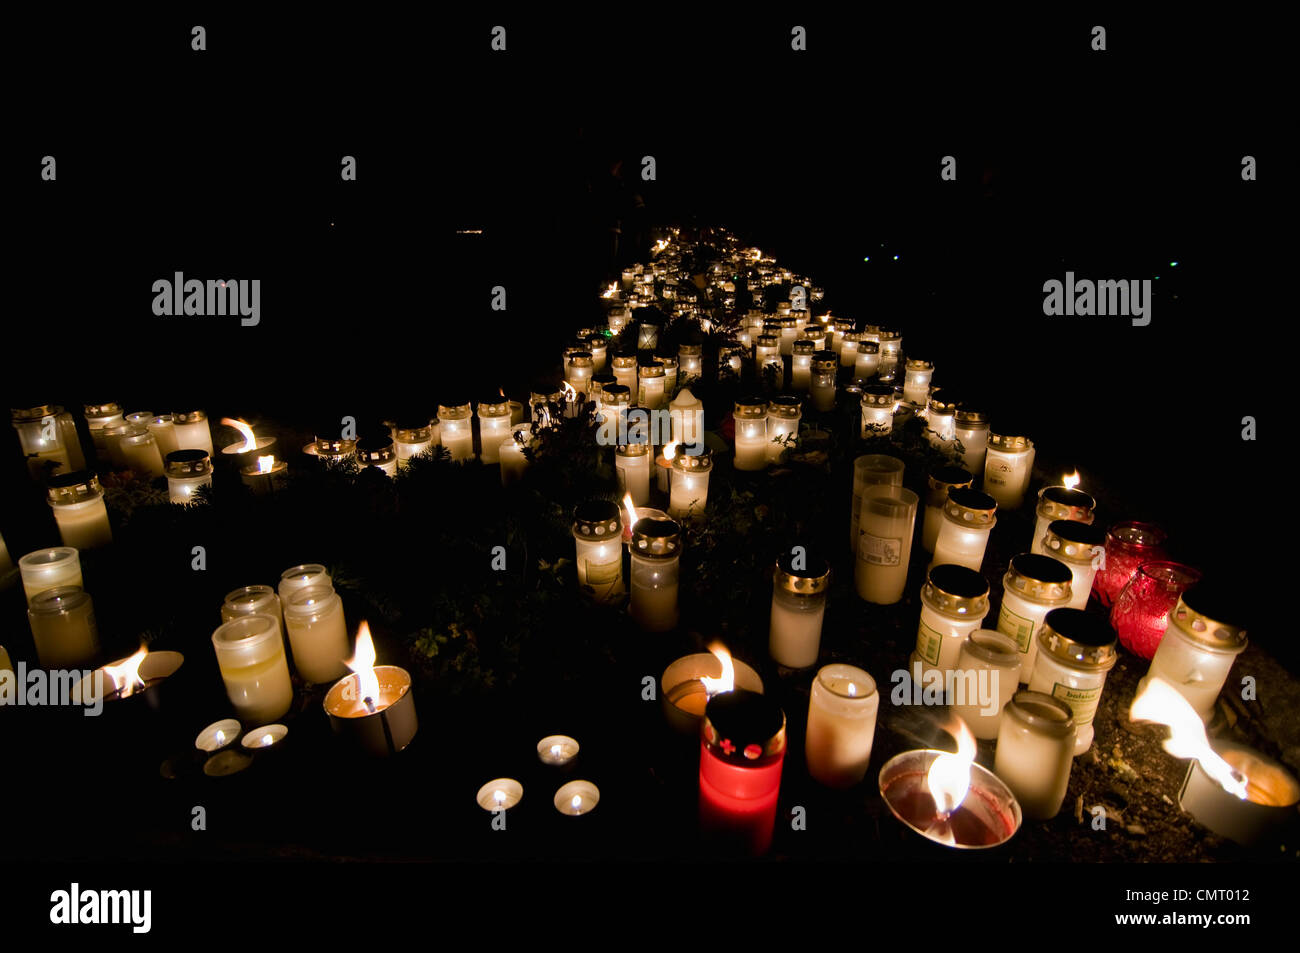 Large group of tea lights arranged in memories - Stock Image